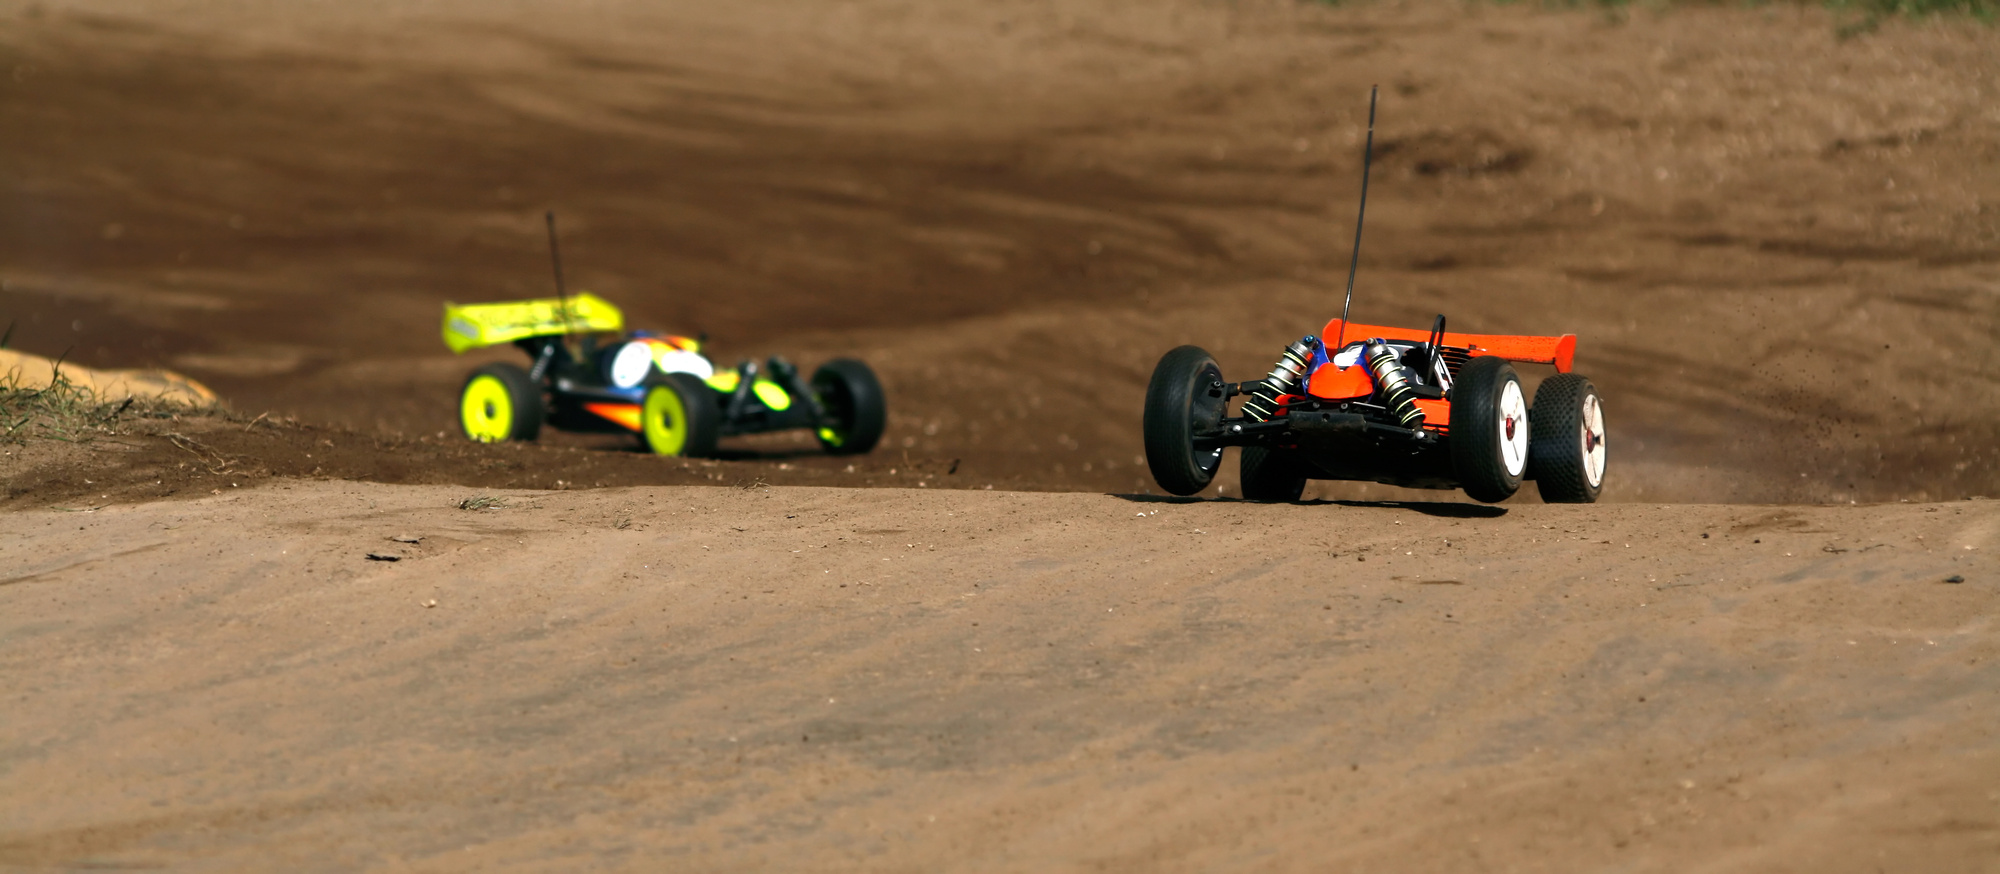 4 Insanely Fun Games You Can Play with RC Cars